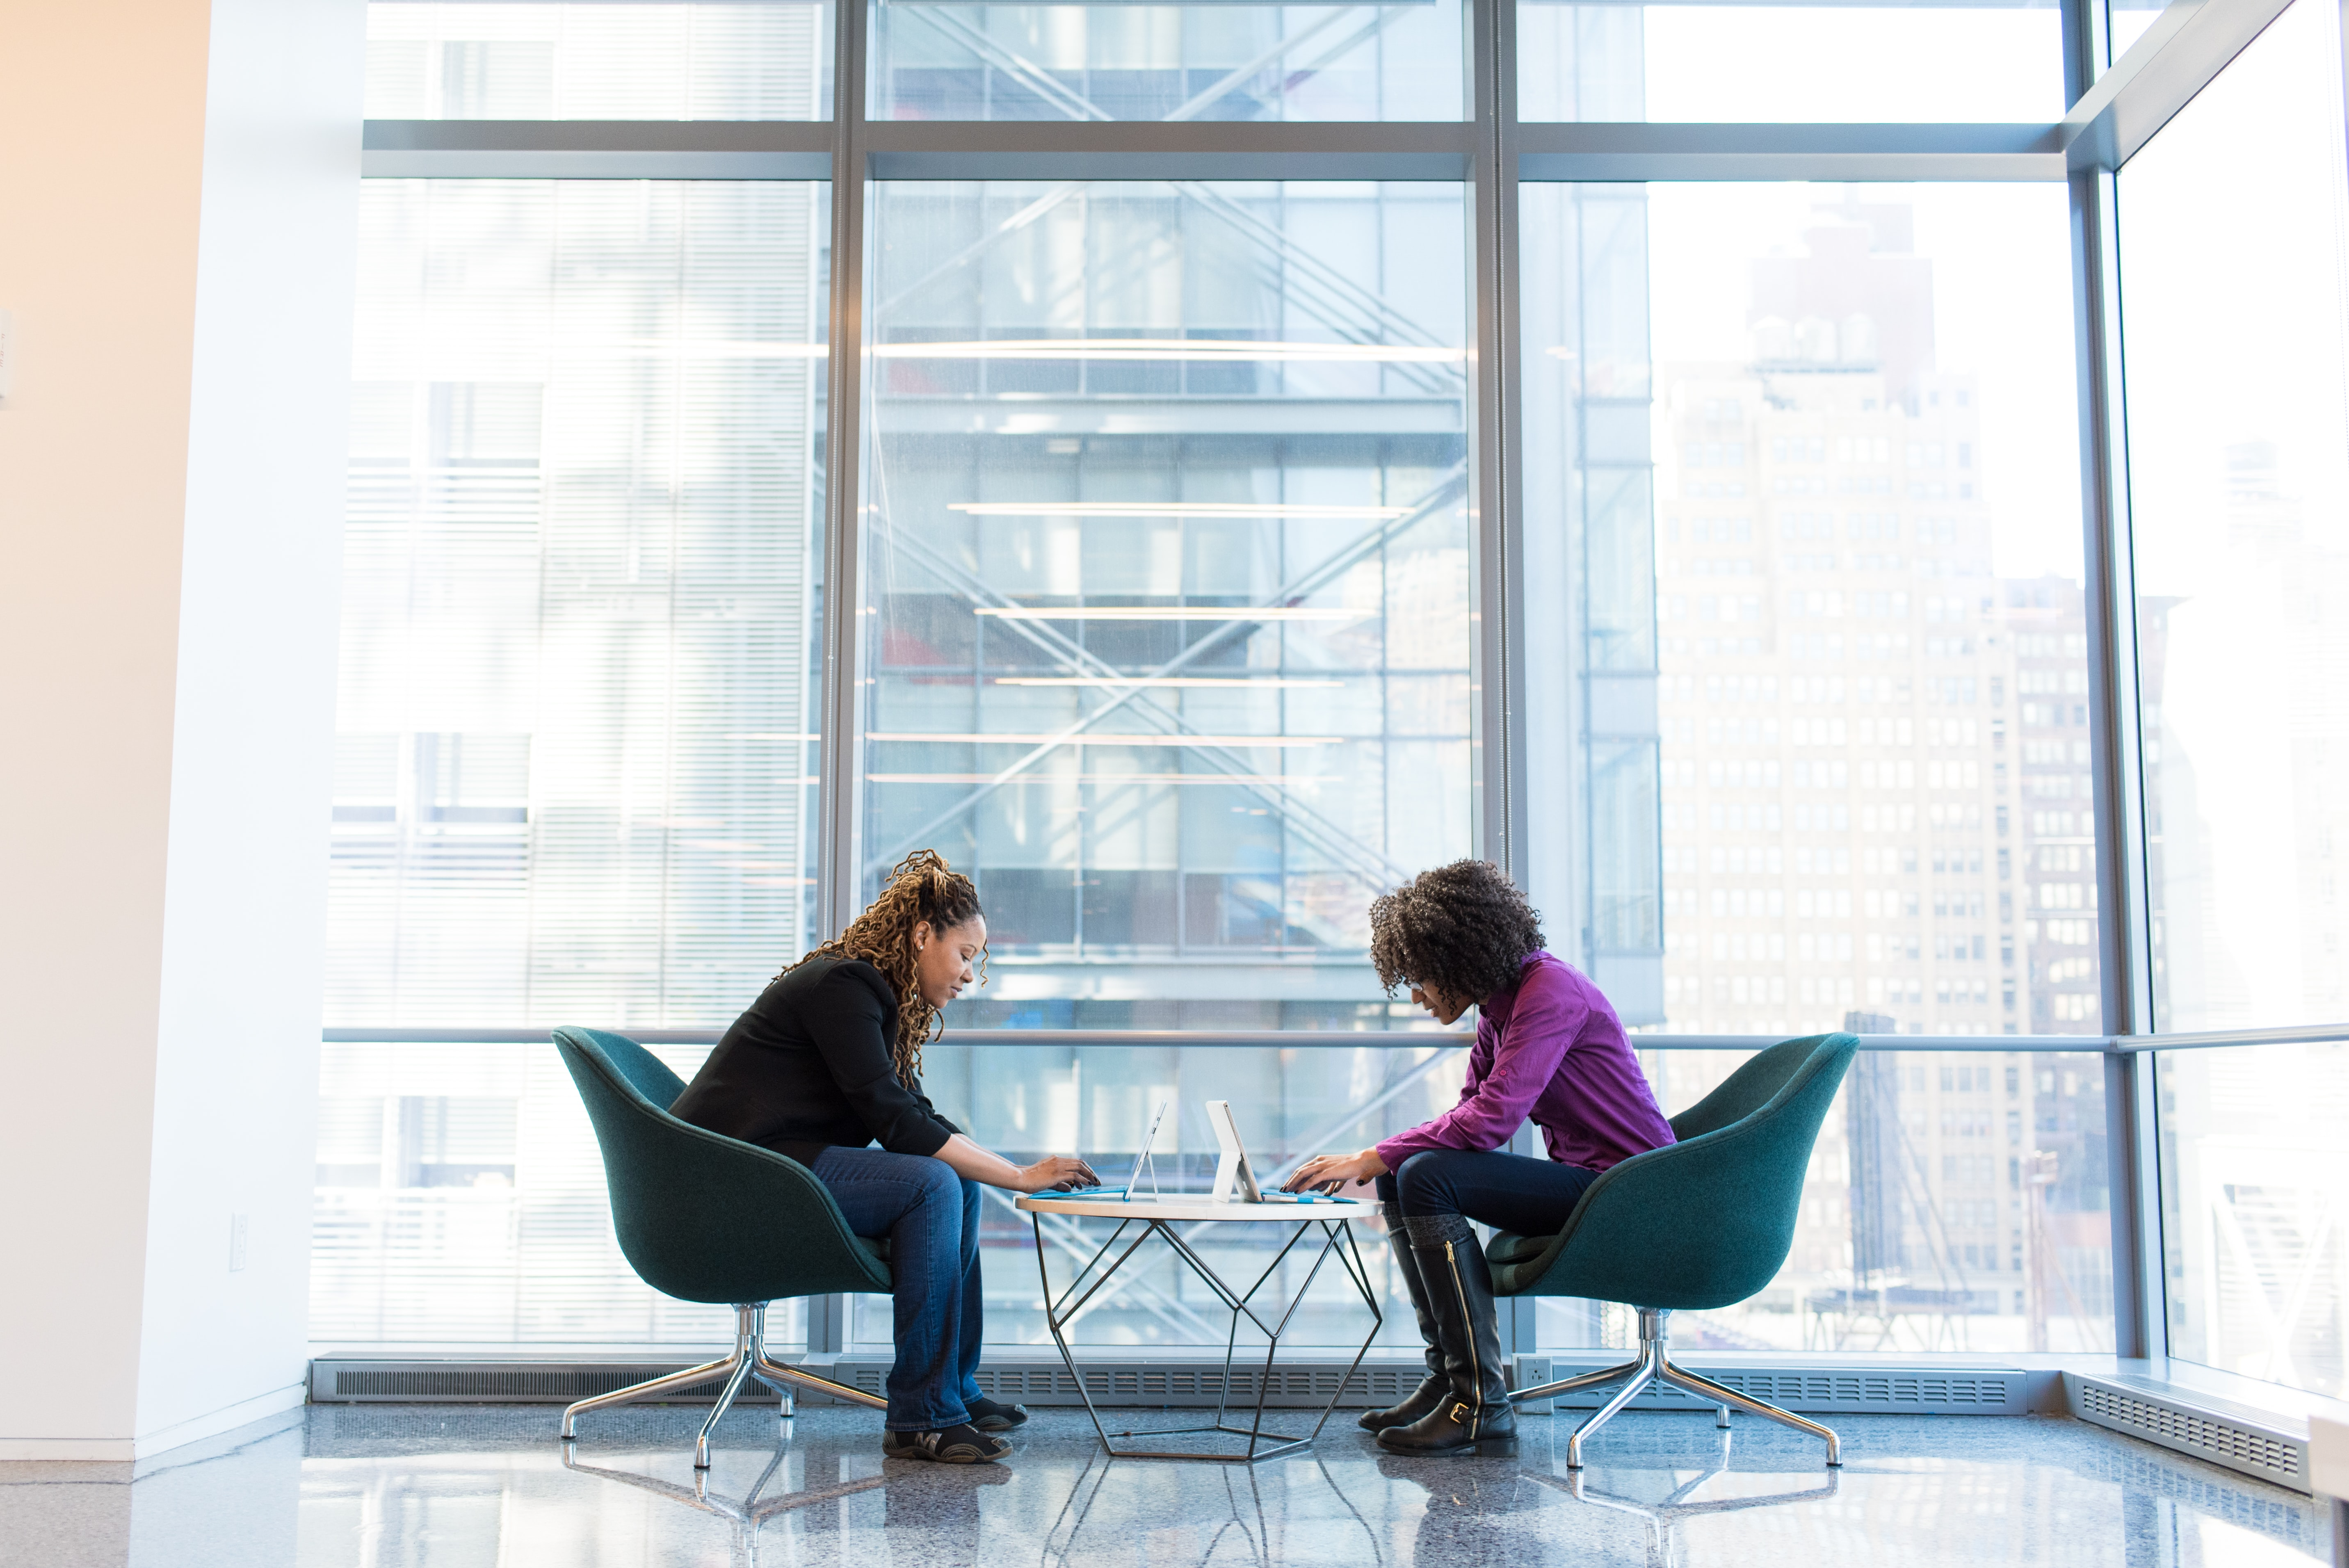 two women sitting across from each other in an office